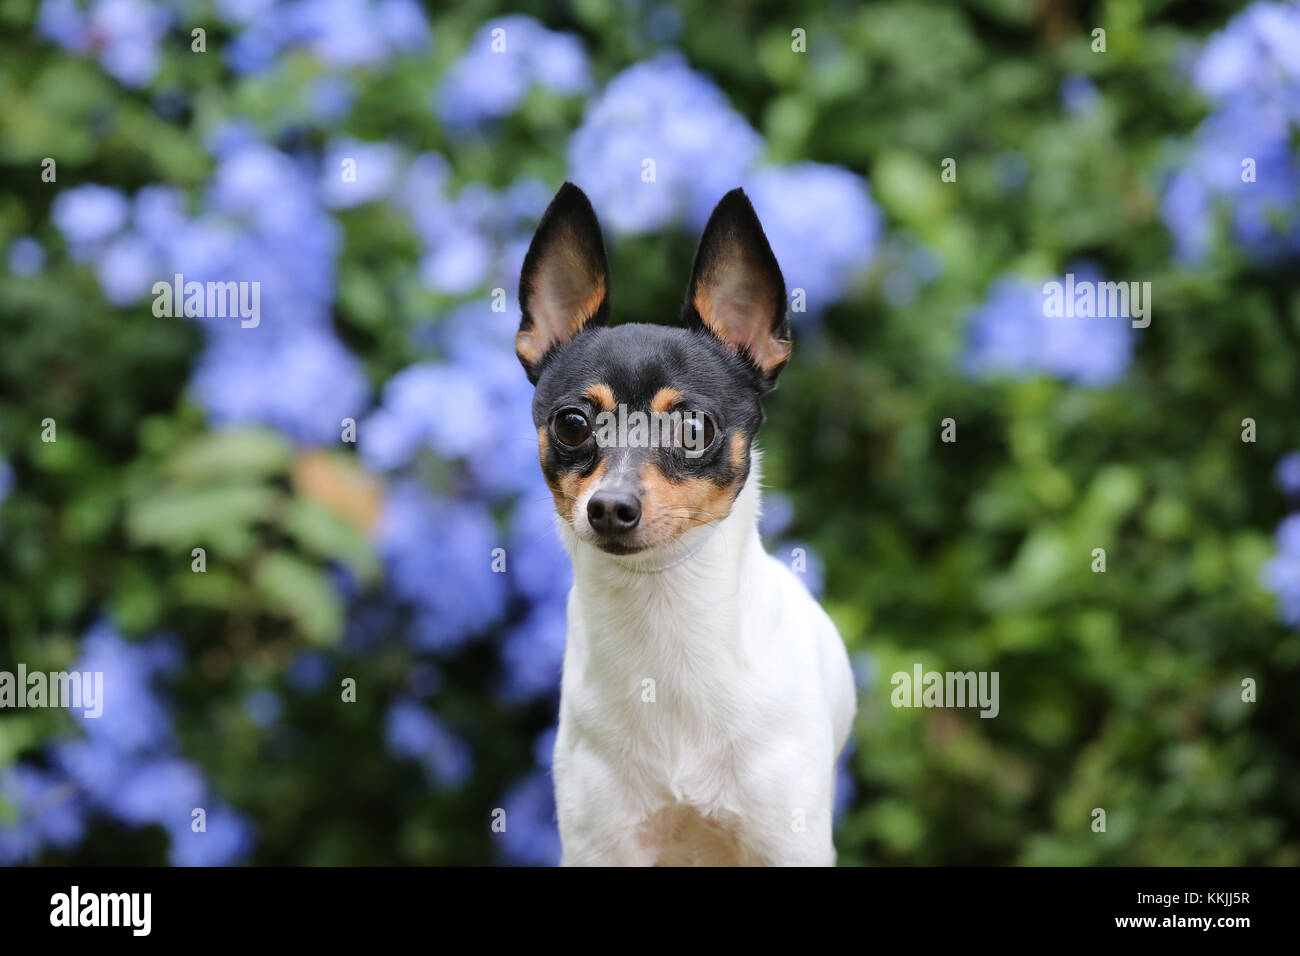 Terrier - Toy Fox Toy Fox Terrier American Toy Terrier - Stock Image